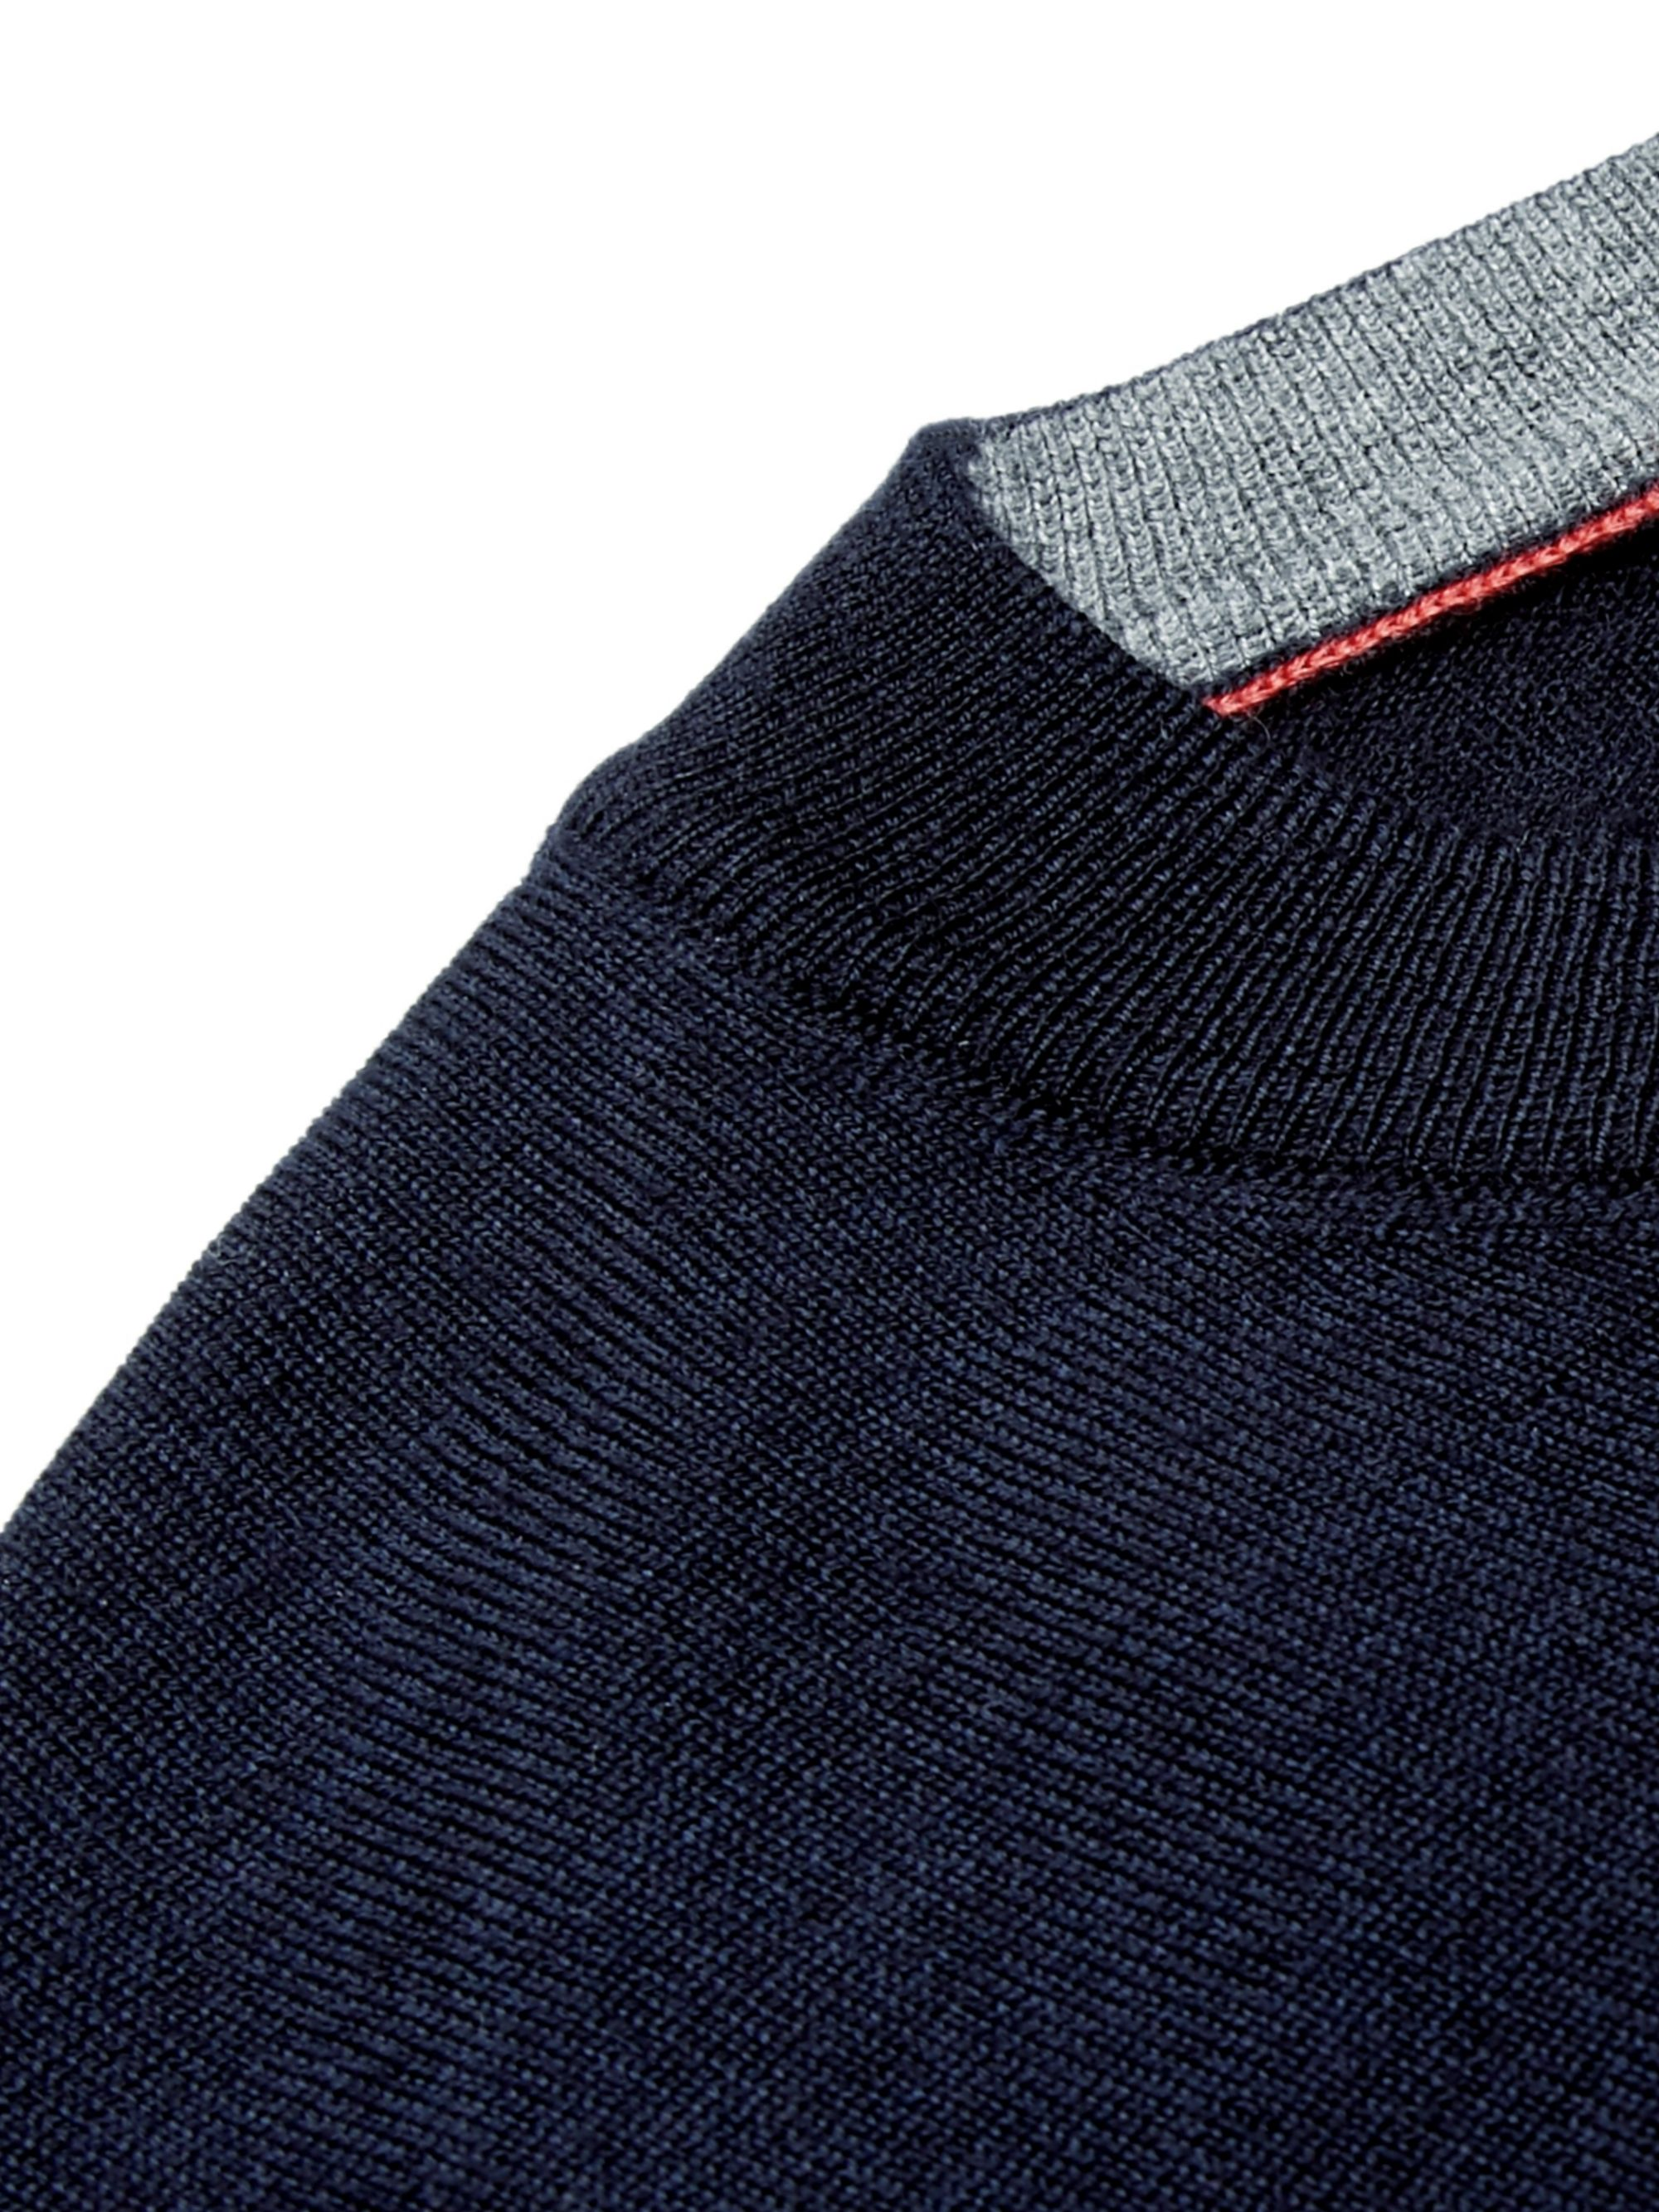 Brunello Cucinelli Wool and Cashmere-Blend Sweater